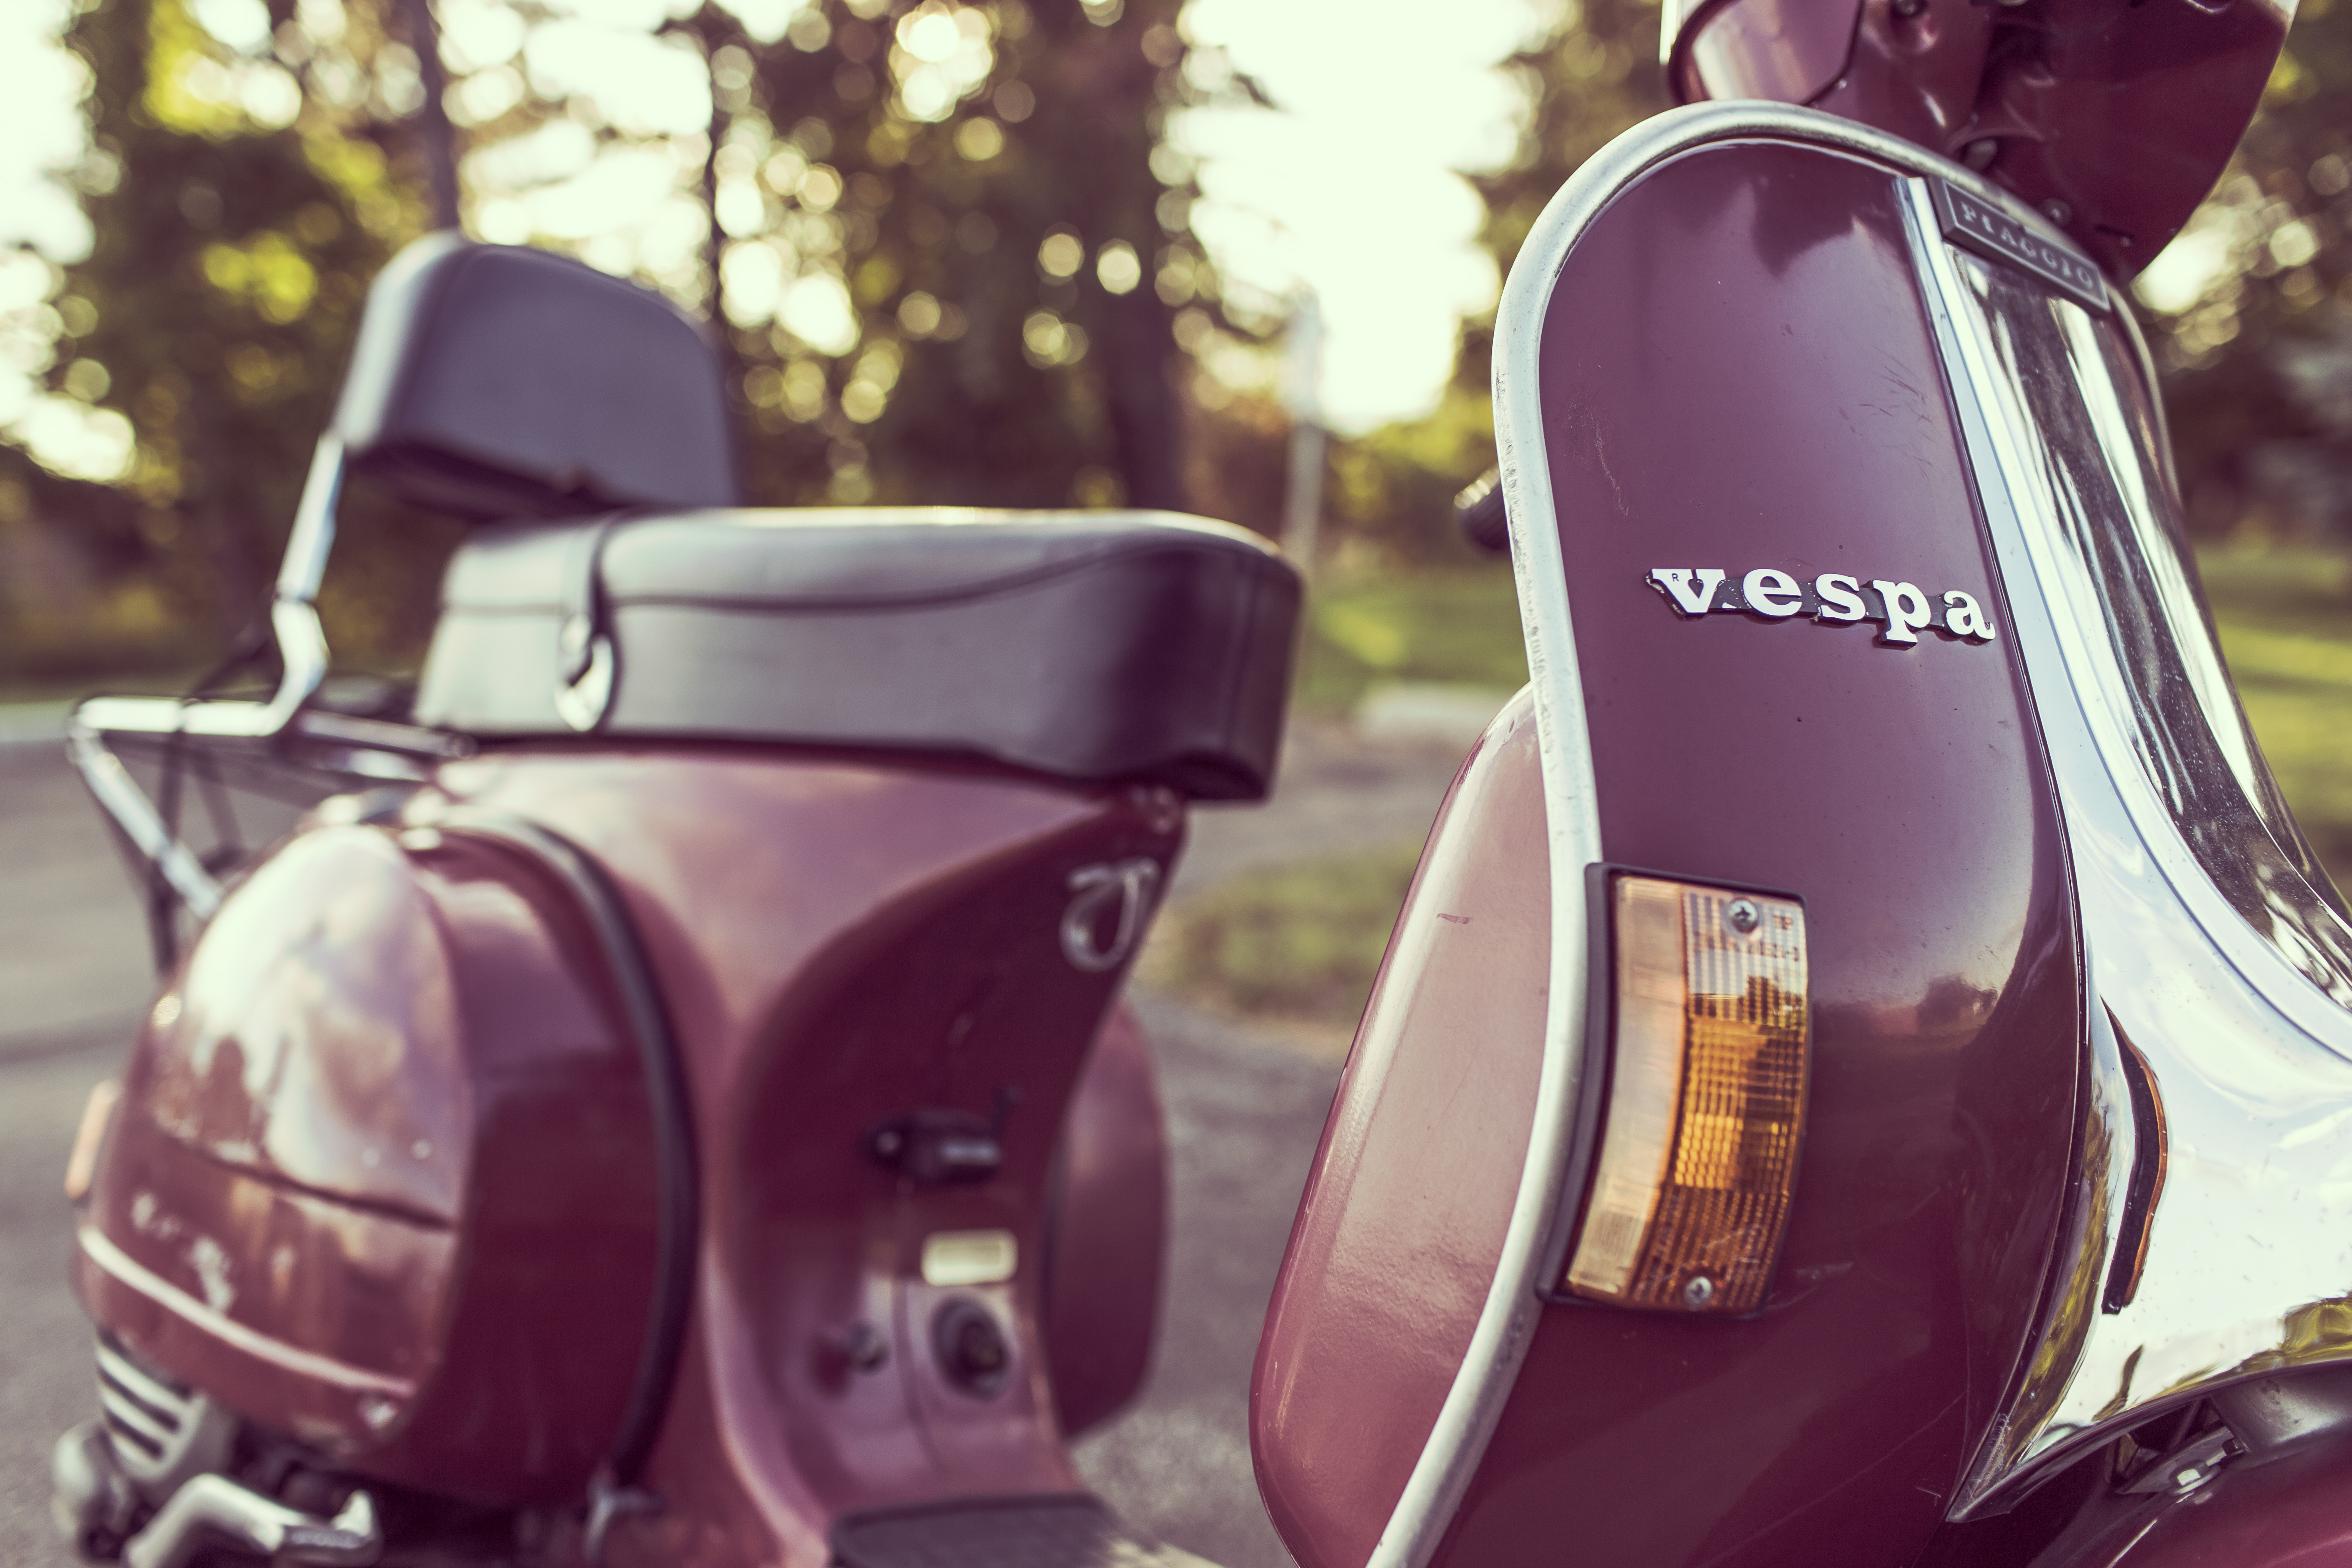 Classic Vespa, scooters, transportation, classic, italy